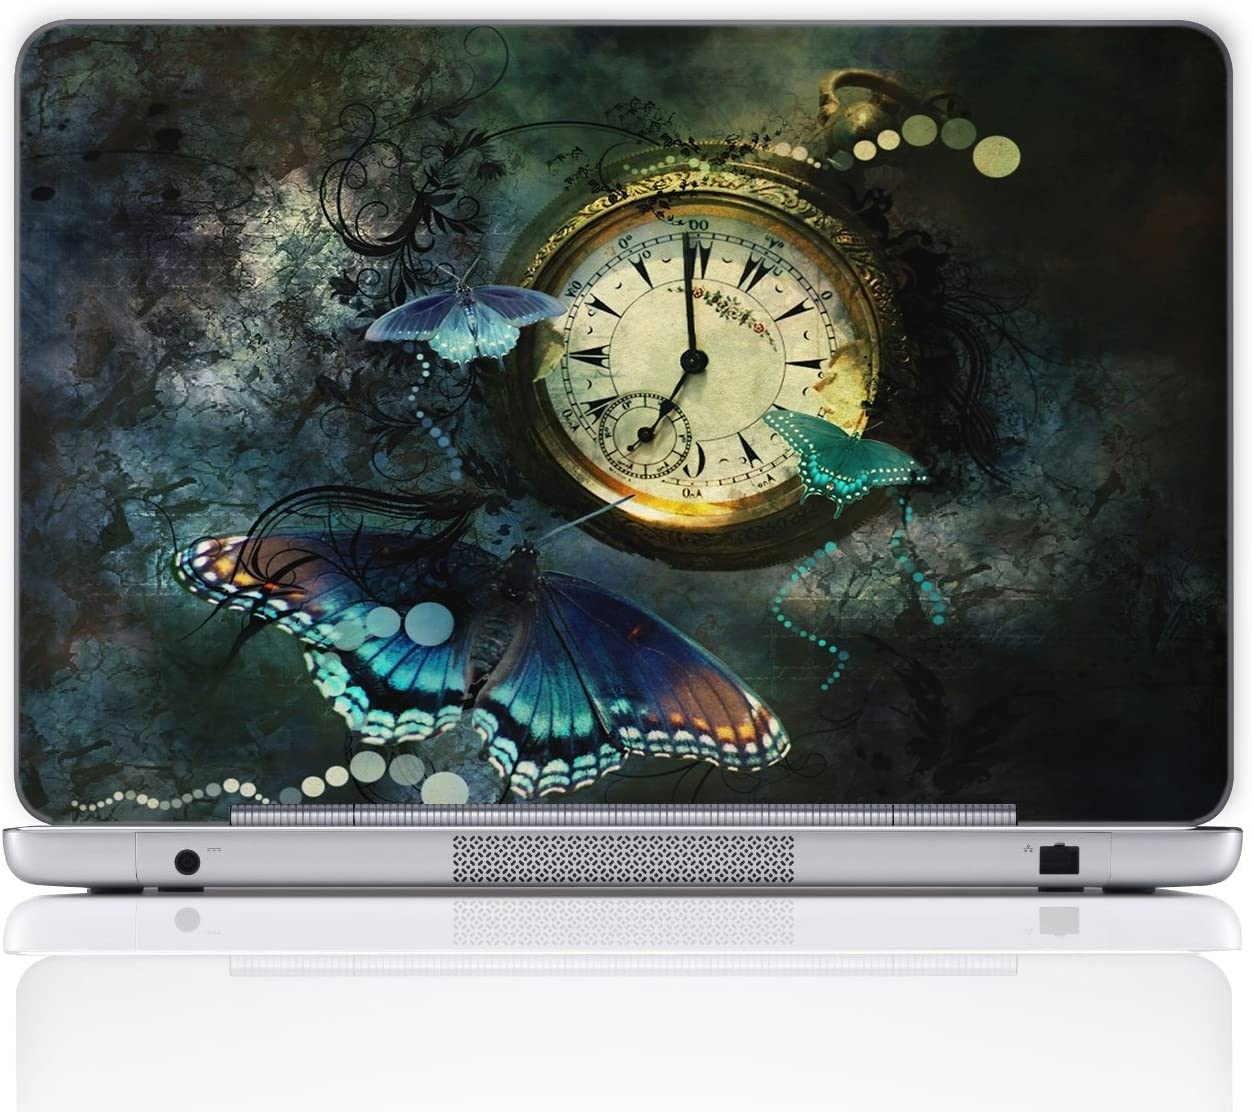 Meffort Inc 15 15.6 Inch Laptop Notebook Skin Sticker Cover Art Decal (Free Wrist pad) - Clock Butterflies